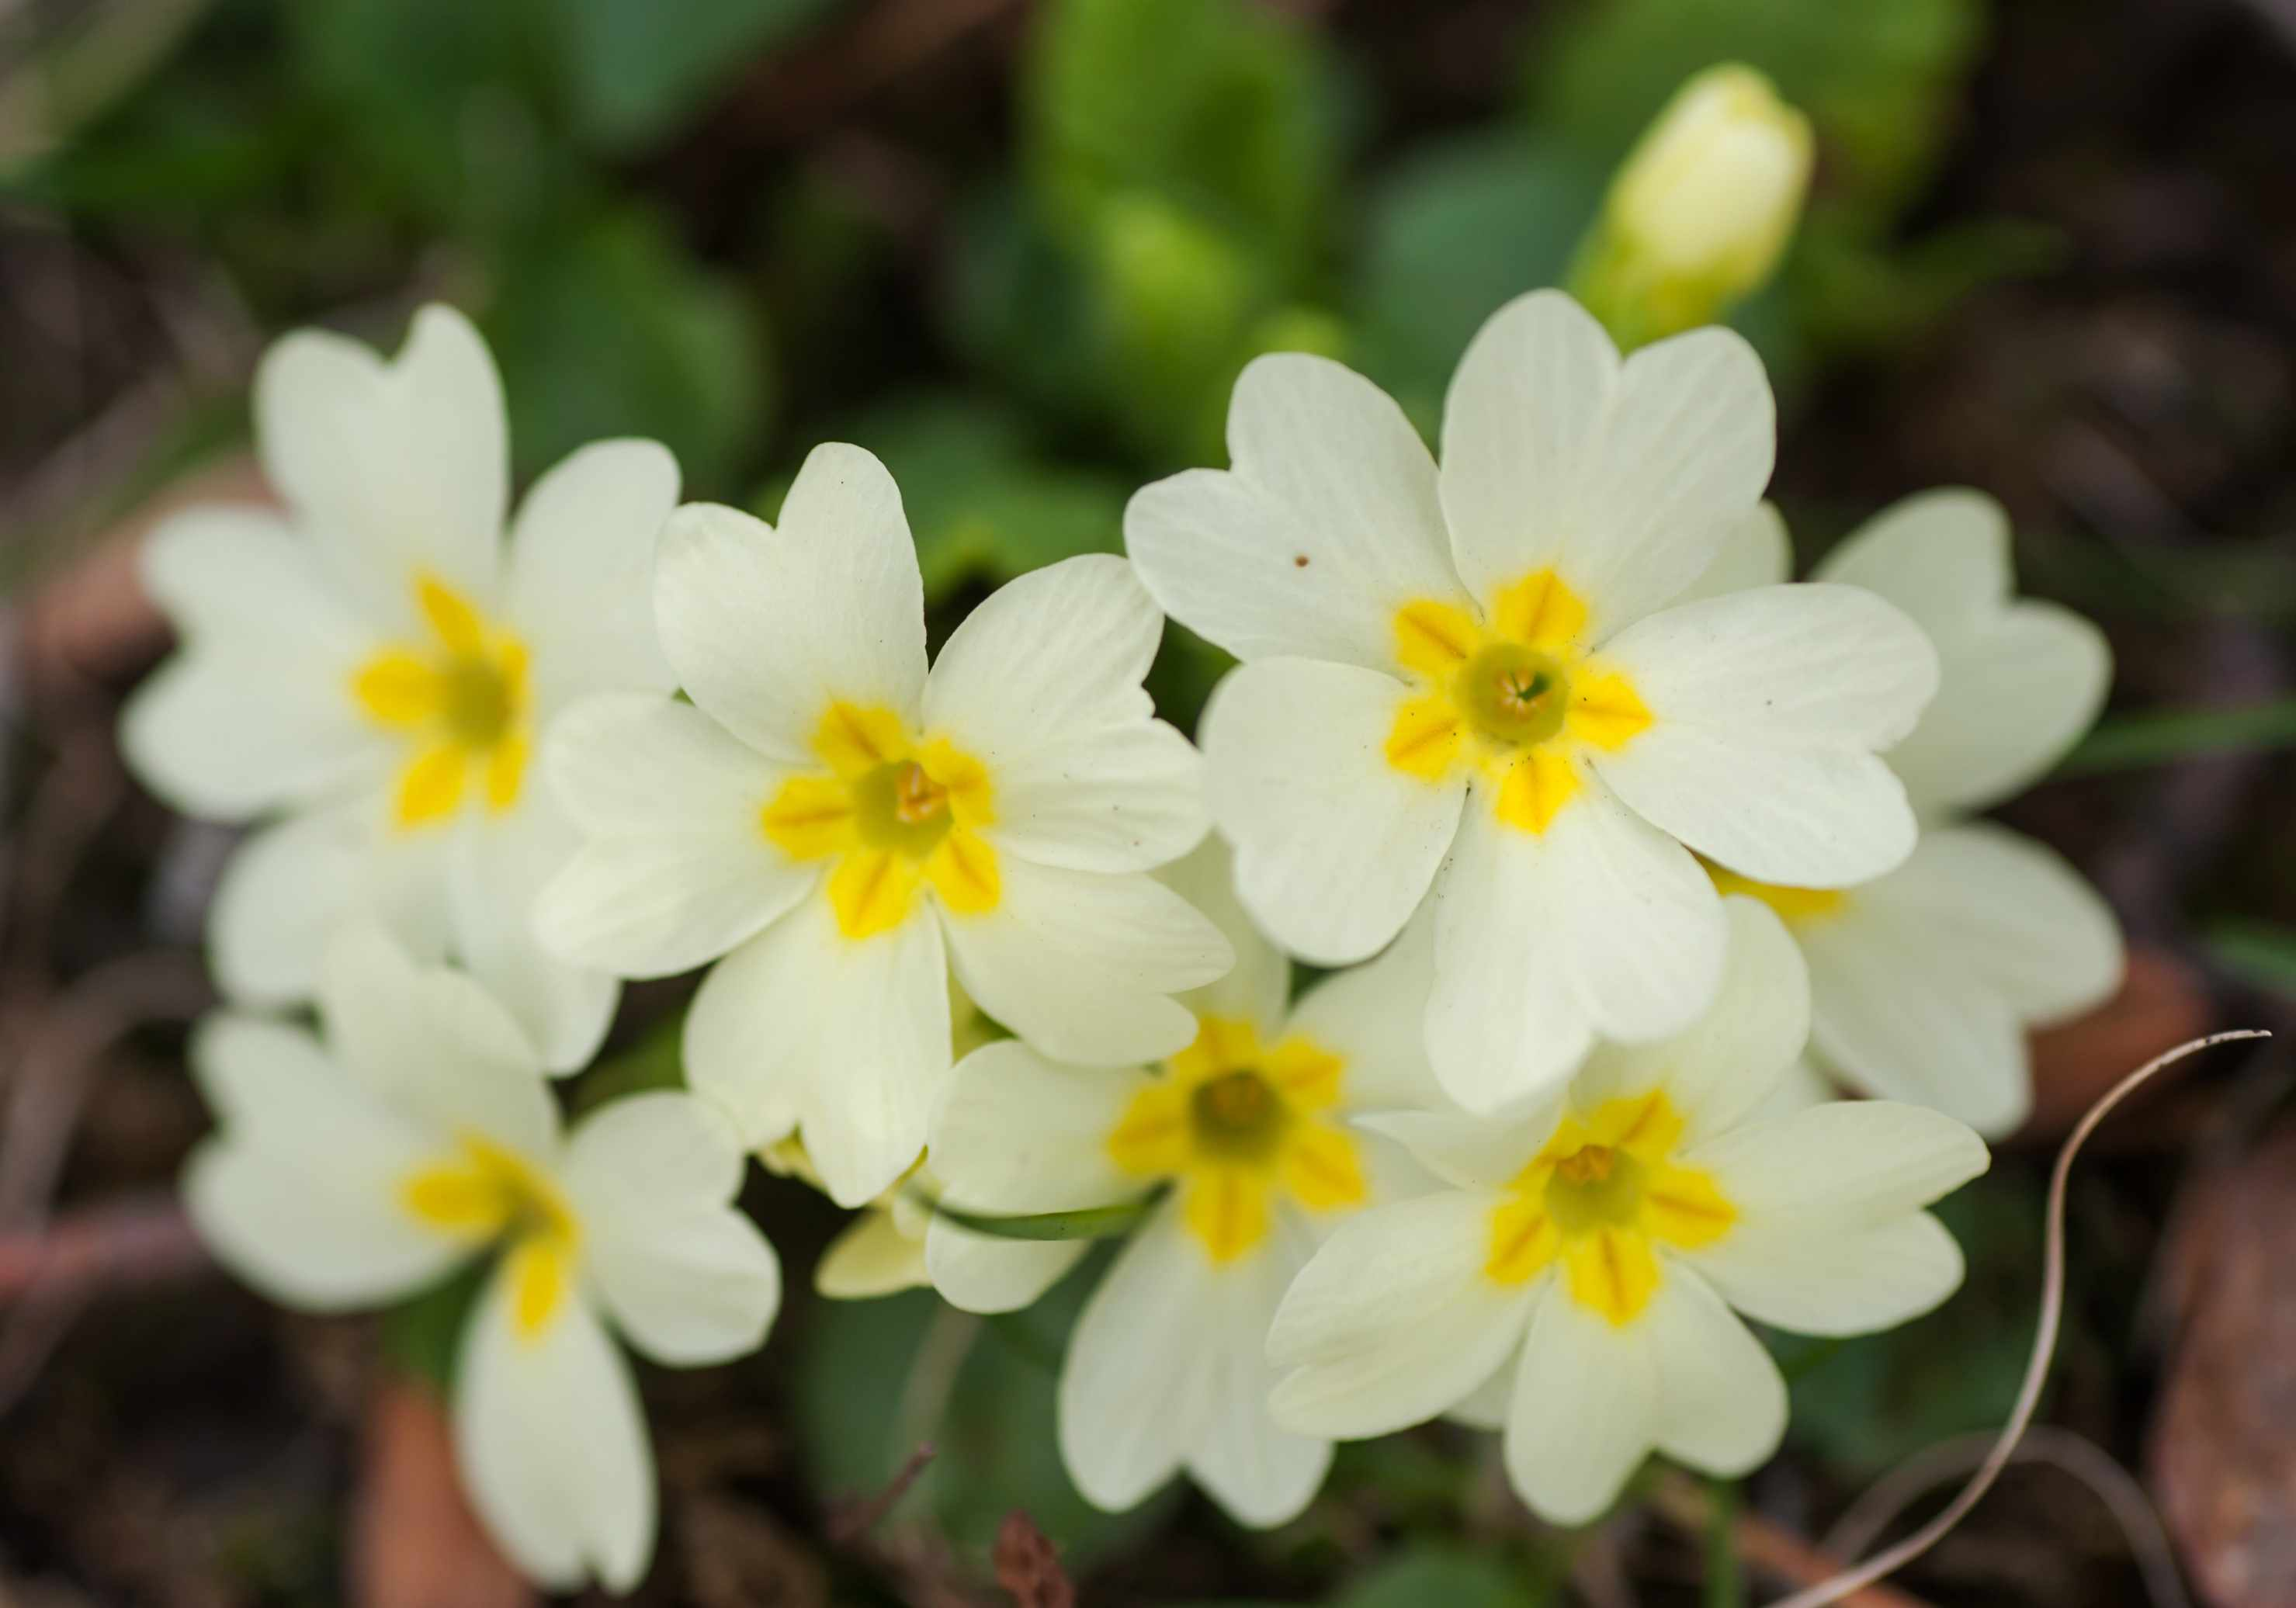 Primrose perennial flowers with white petals and yellow star-like centers closeup